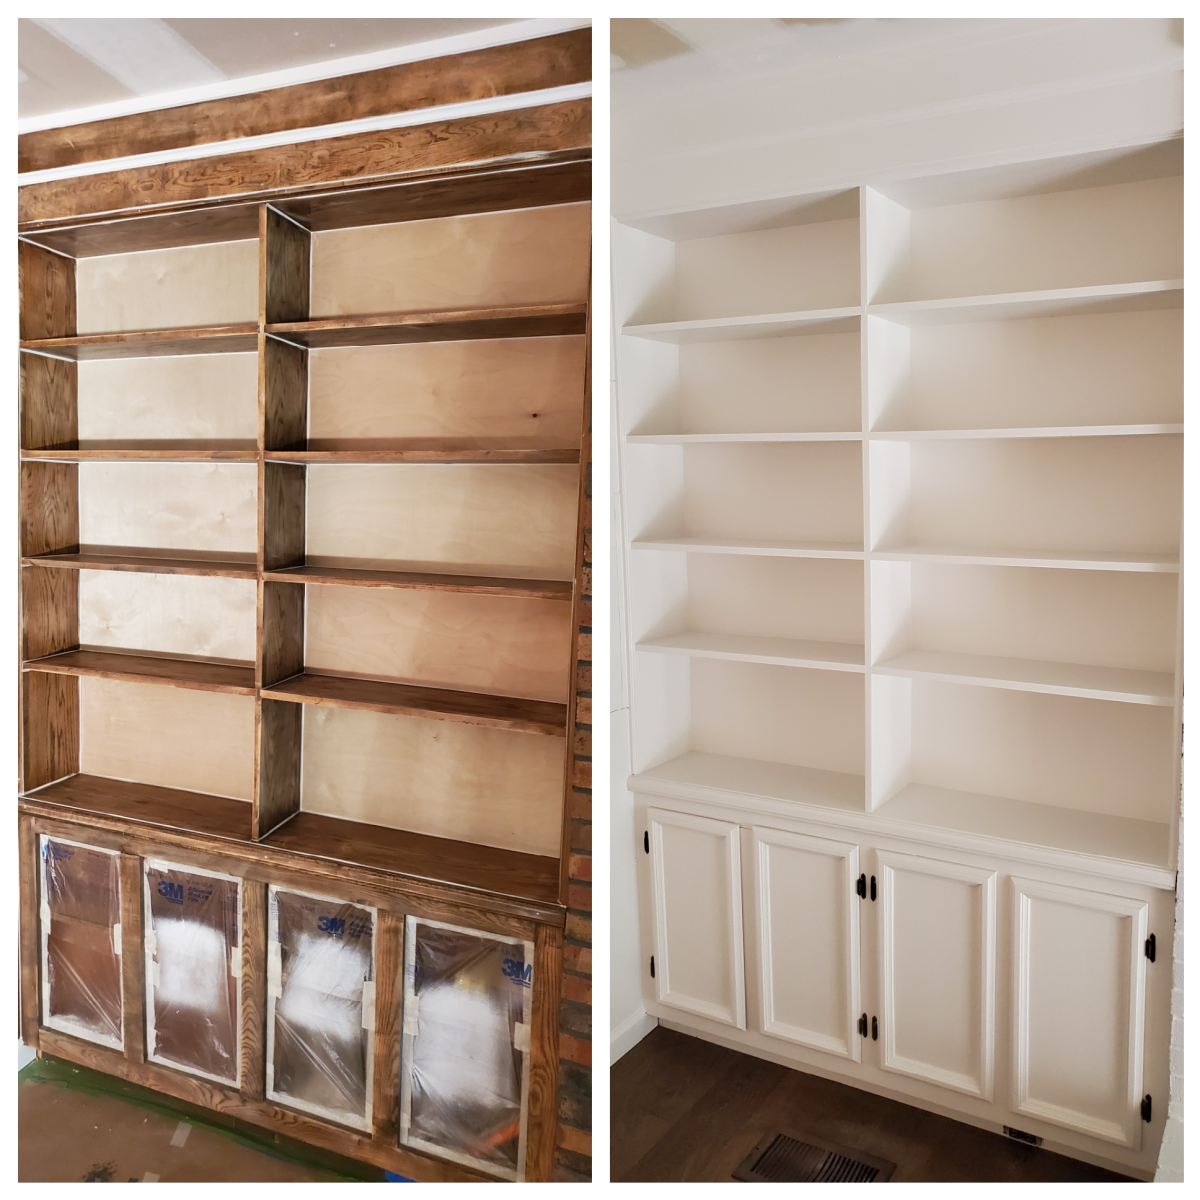 An oak bookshelf I spray painted with my HVLP sprayer.